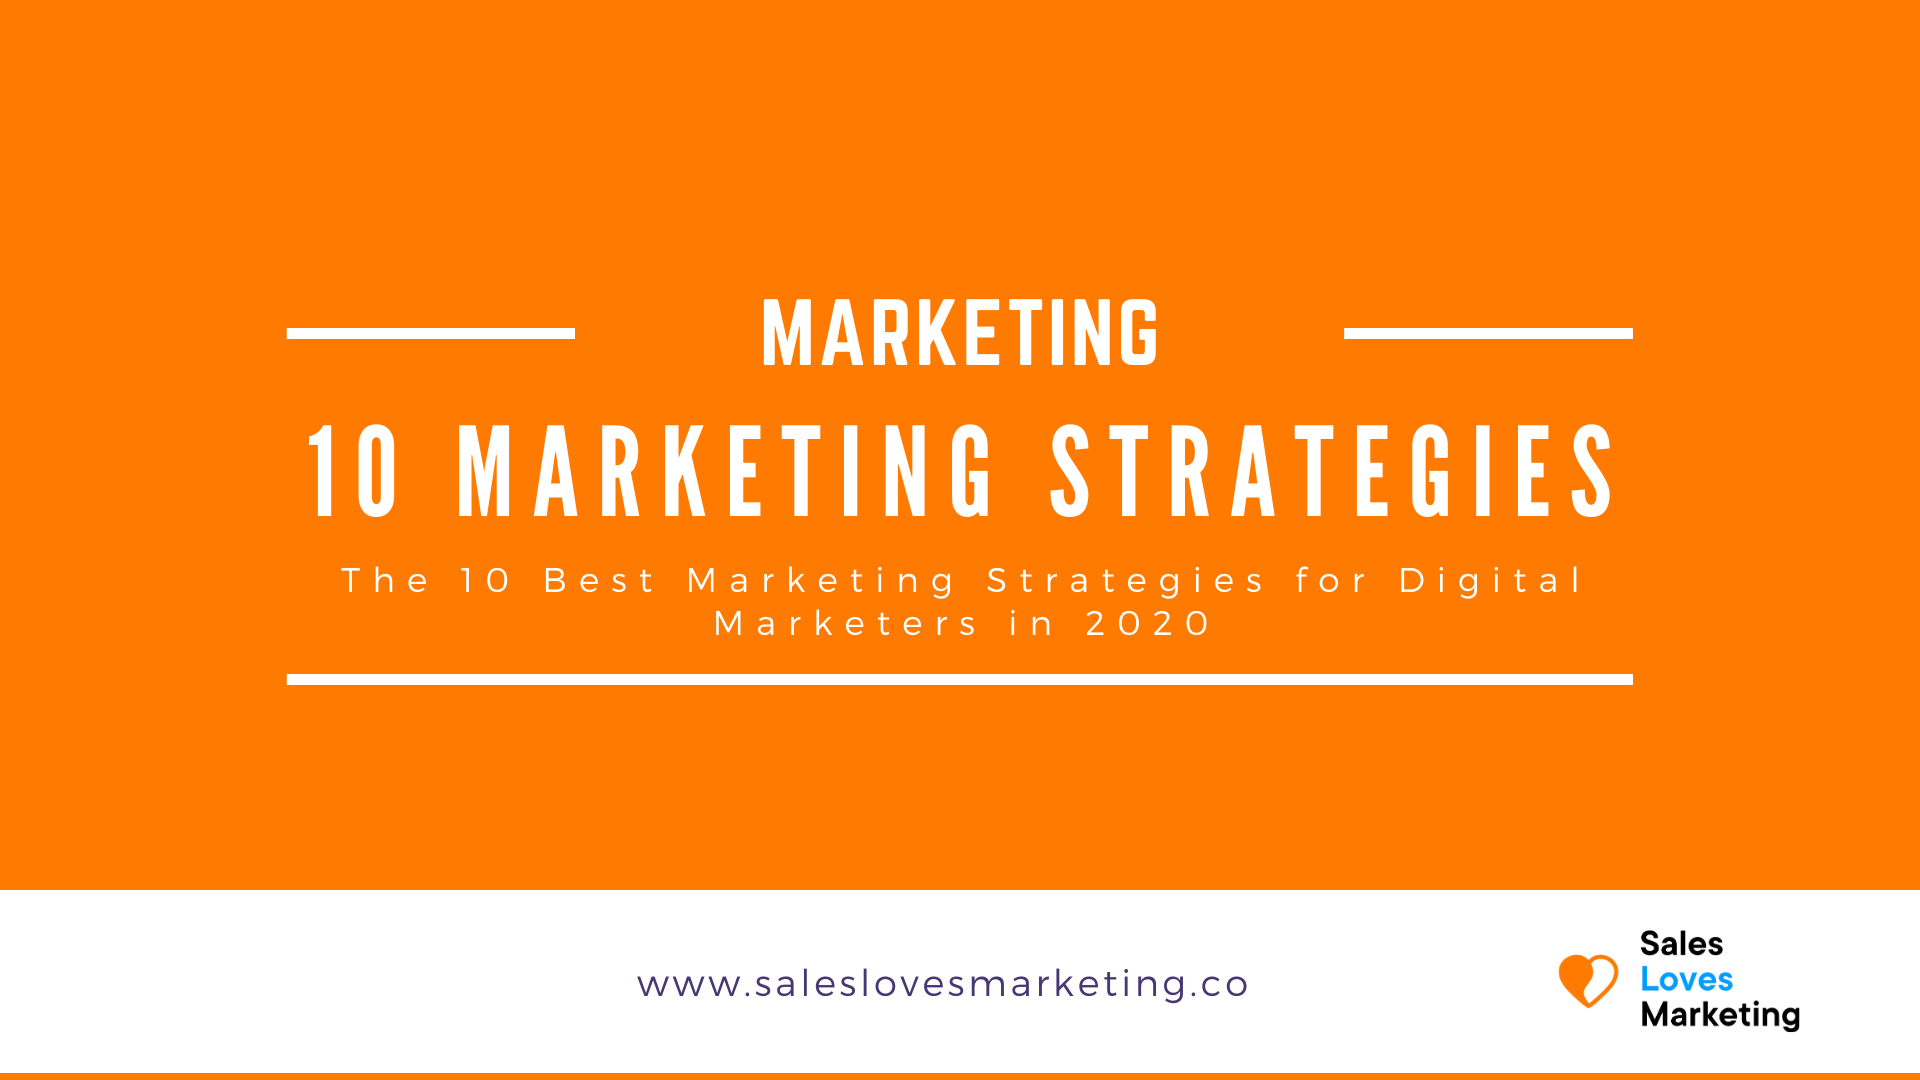 A guide on ten marketing strategies which can help digital marketers to grow their business